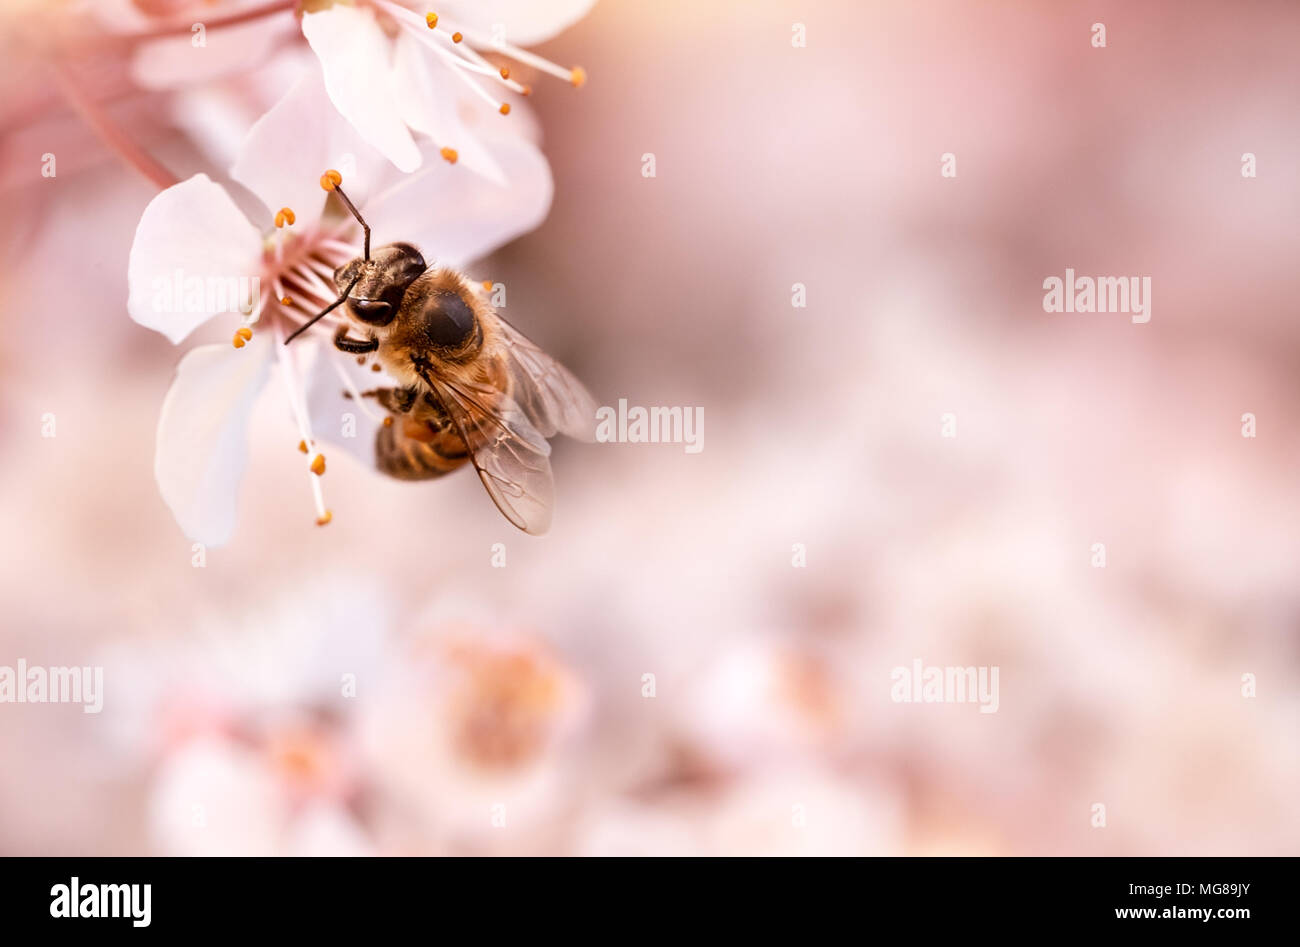 Closeup photo of little bee pollinating blooming cherry tree, insect sitting on gentle white flowers over pink blurry background, spring season Stock Photo